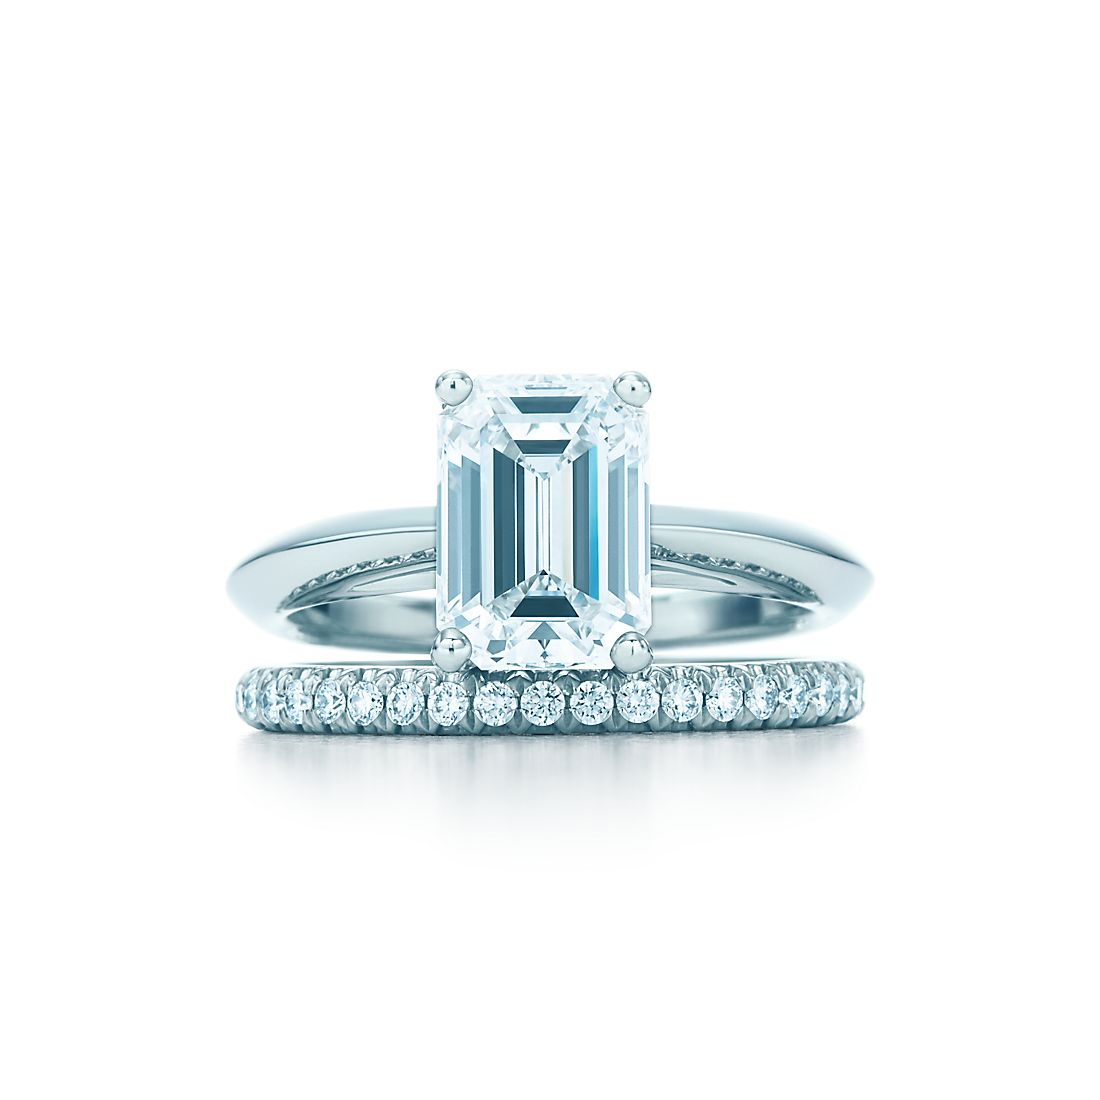 2.0 shown with Tiffany Soleste® Diamond Band Ring